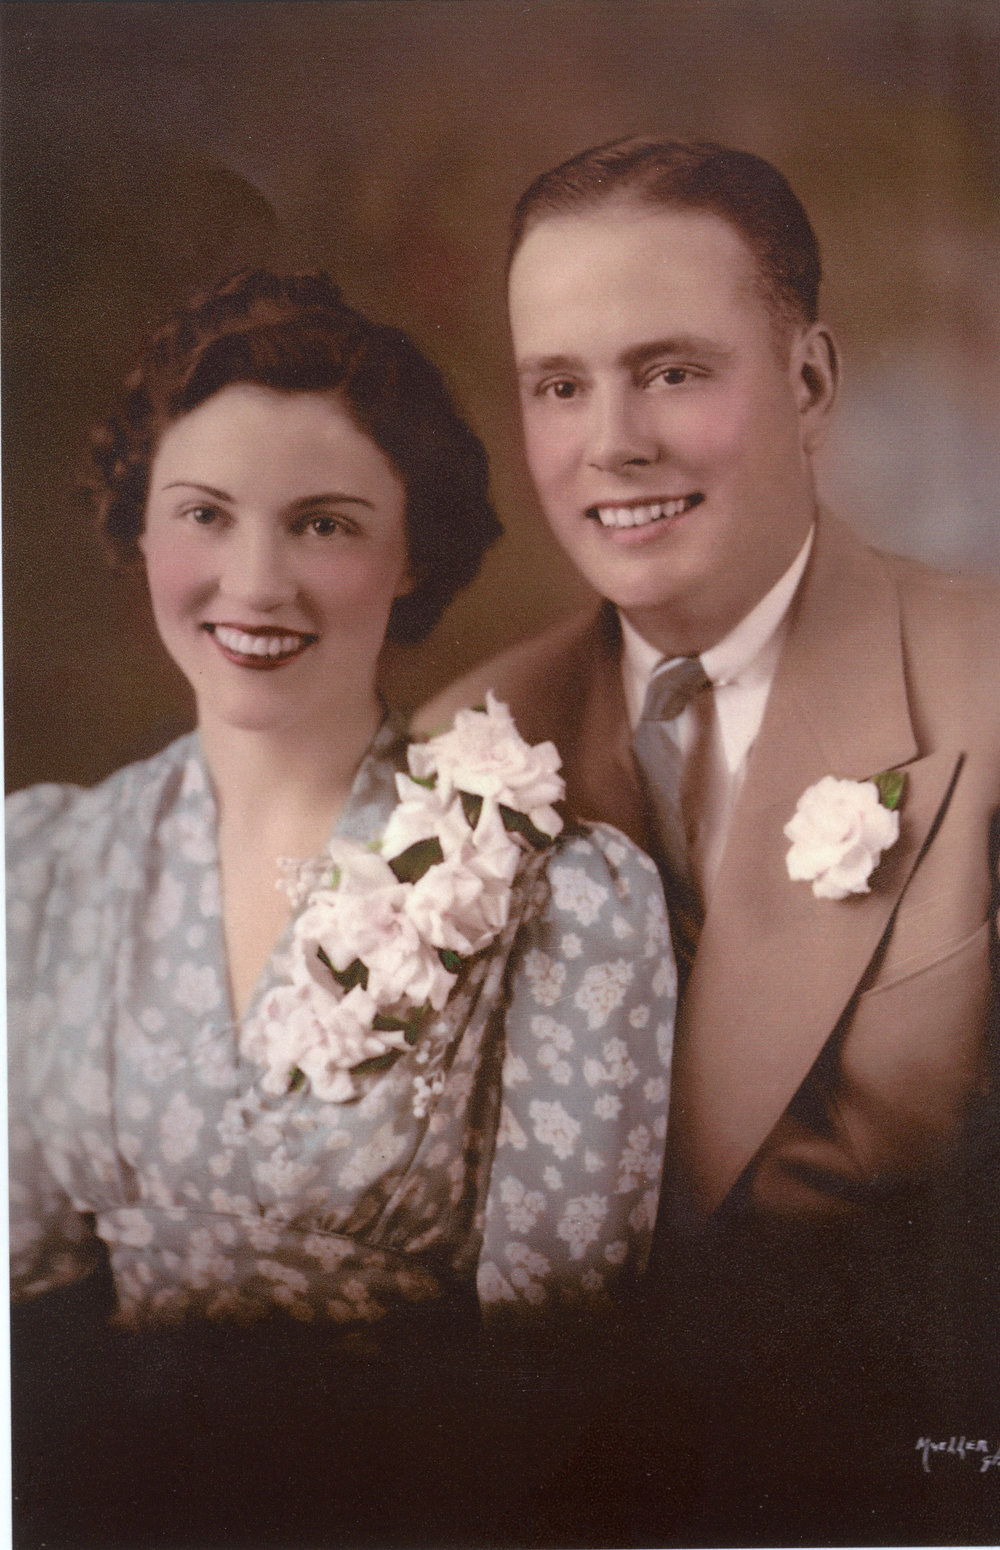 Dorothy & Jack on their wedding day.